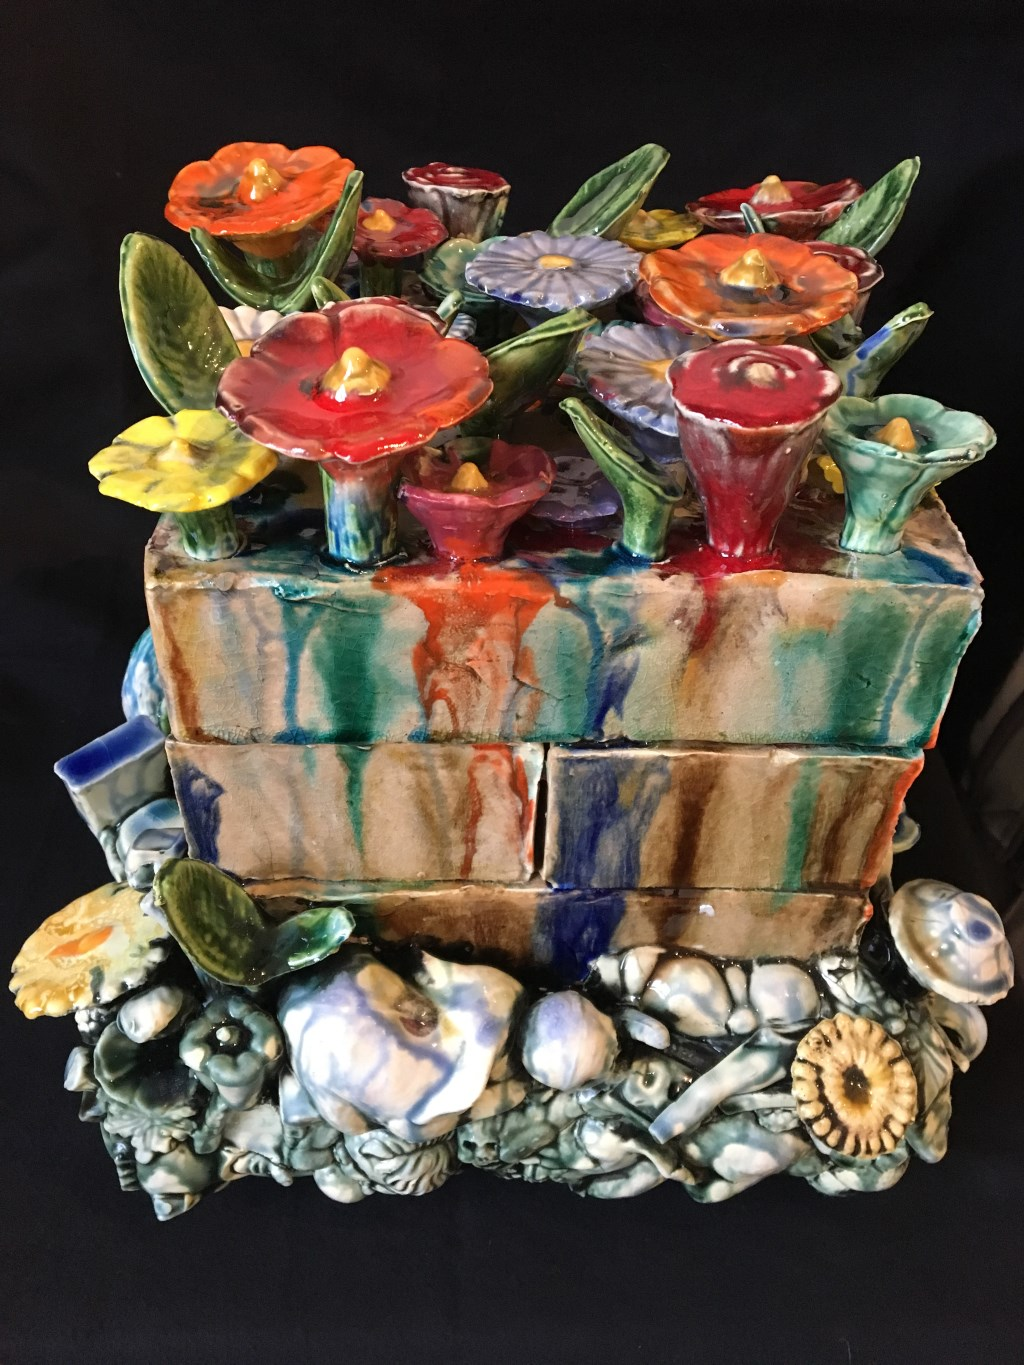 Annual ceramic show, Stacked, opens Nov. 25